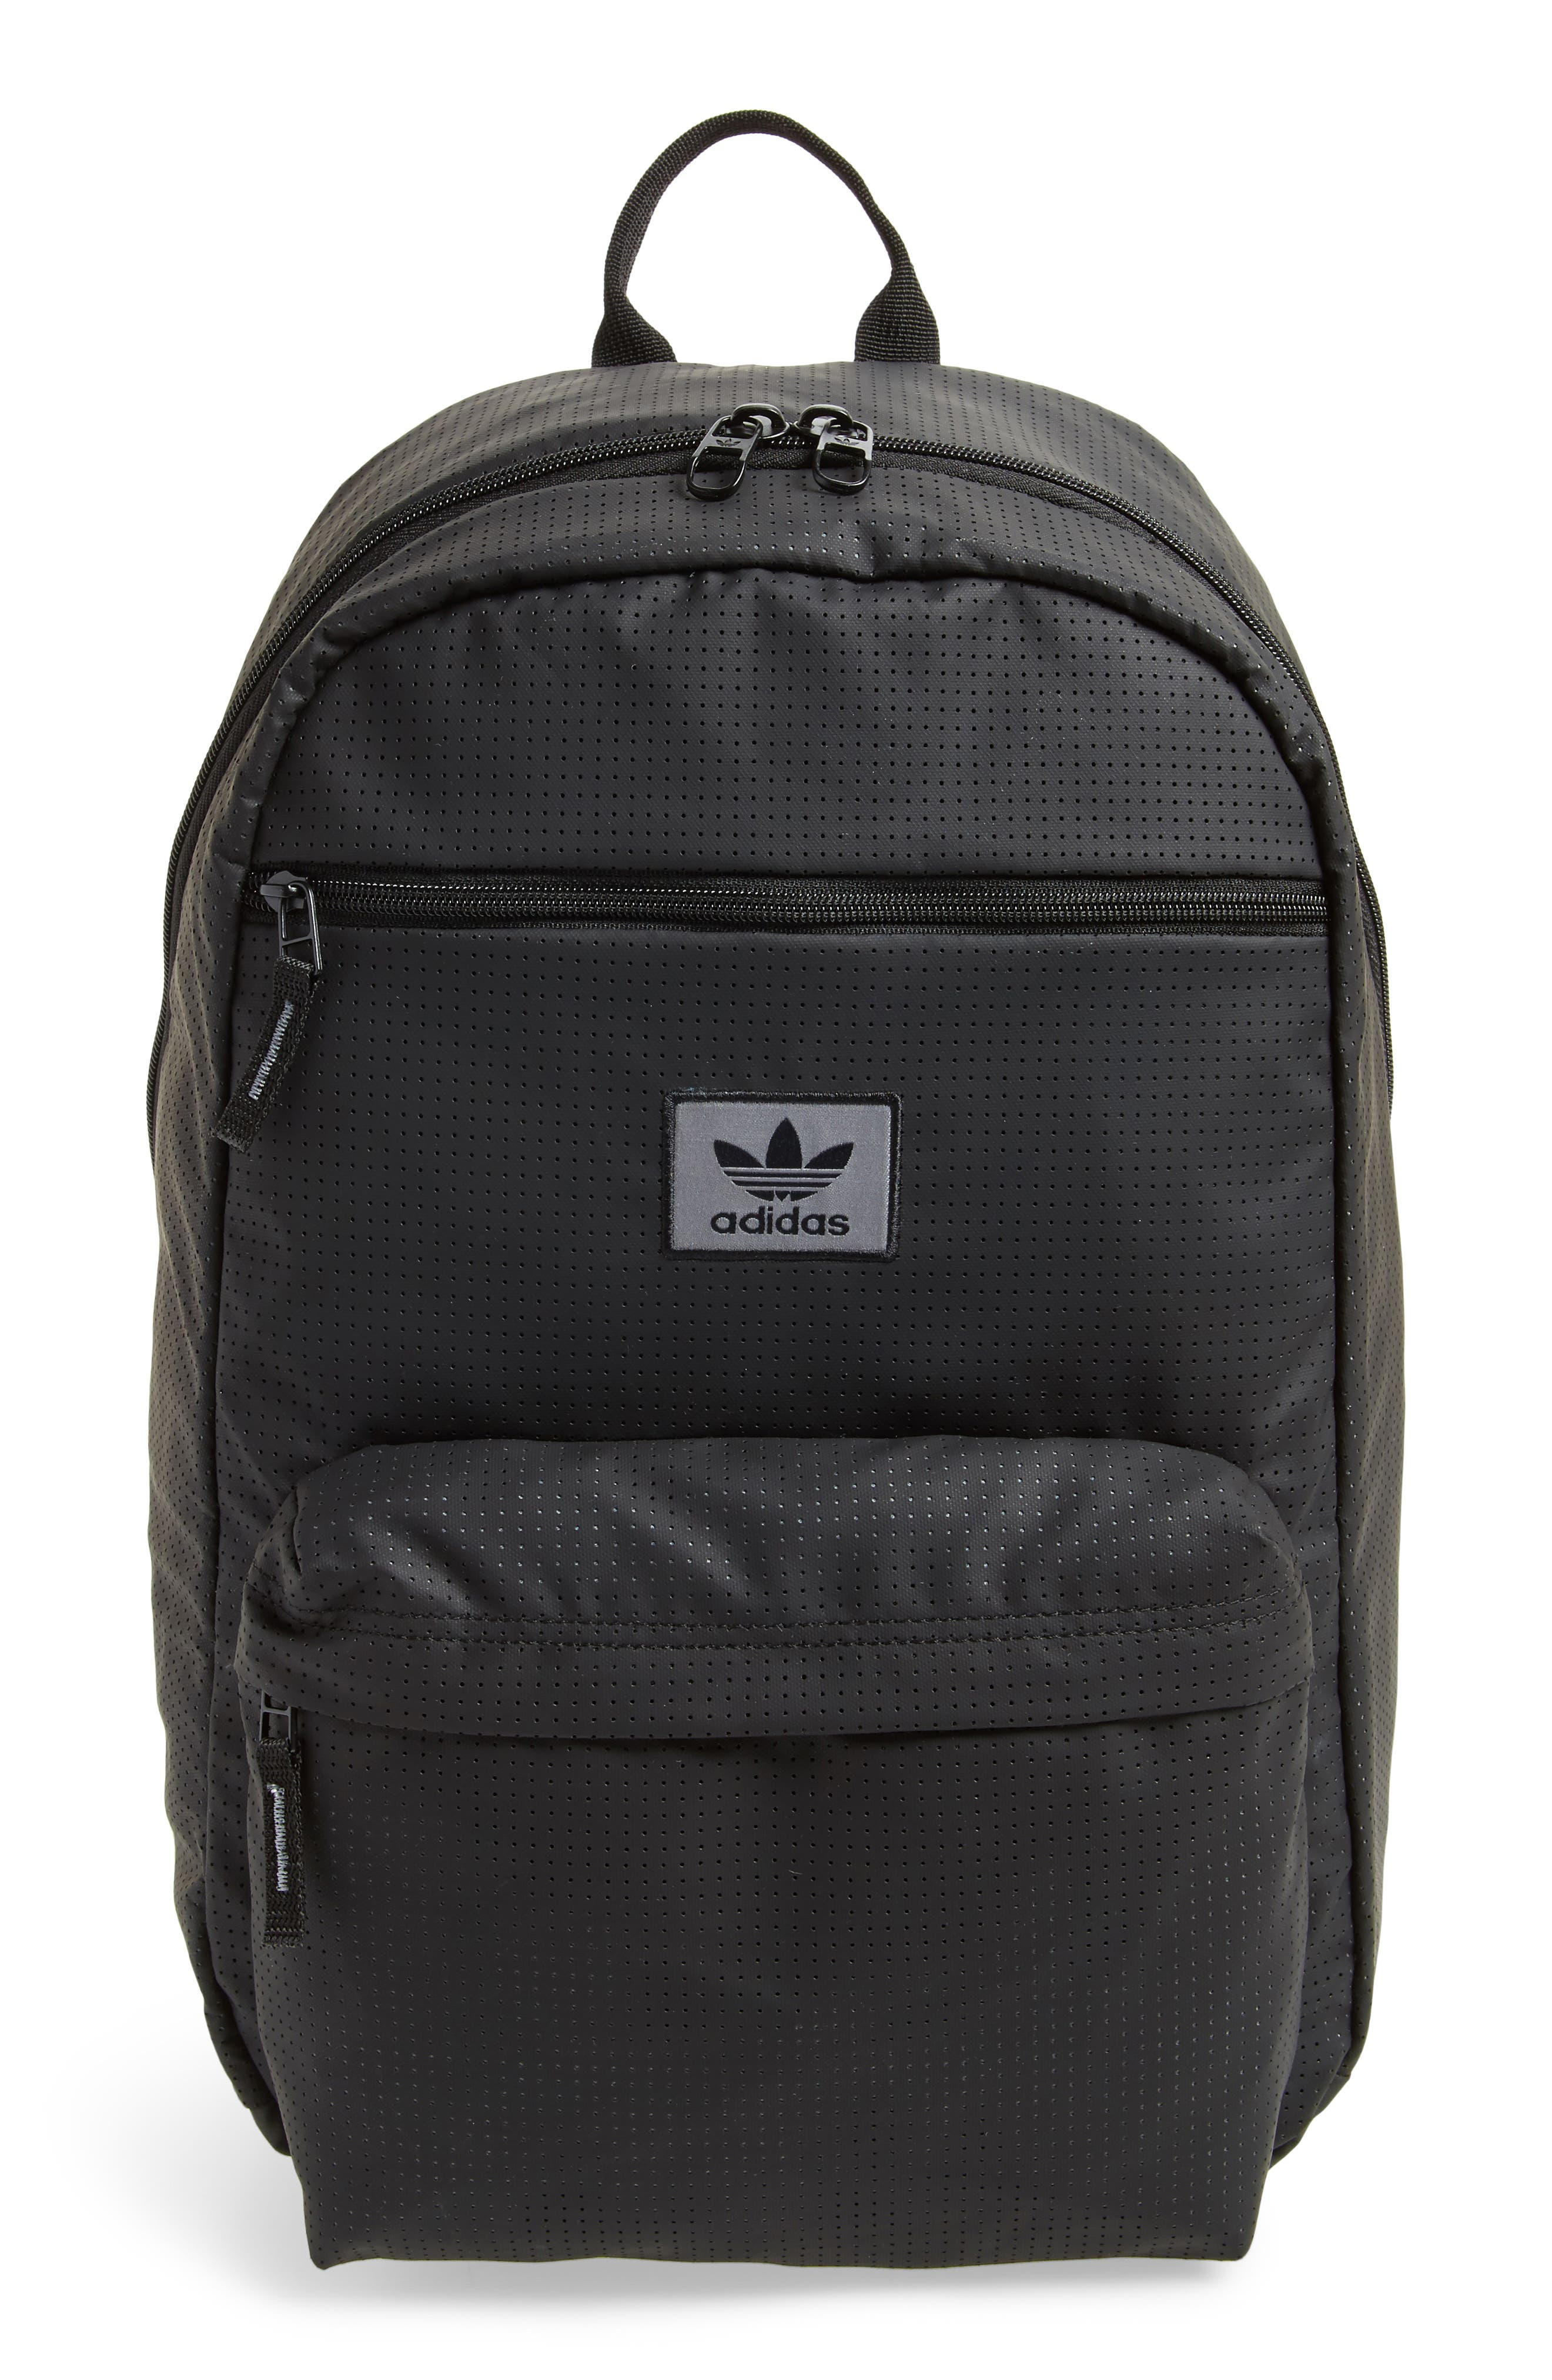 ADIDAS ORIGINALS National Backpack, Main, color, 001